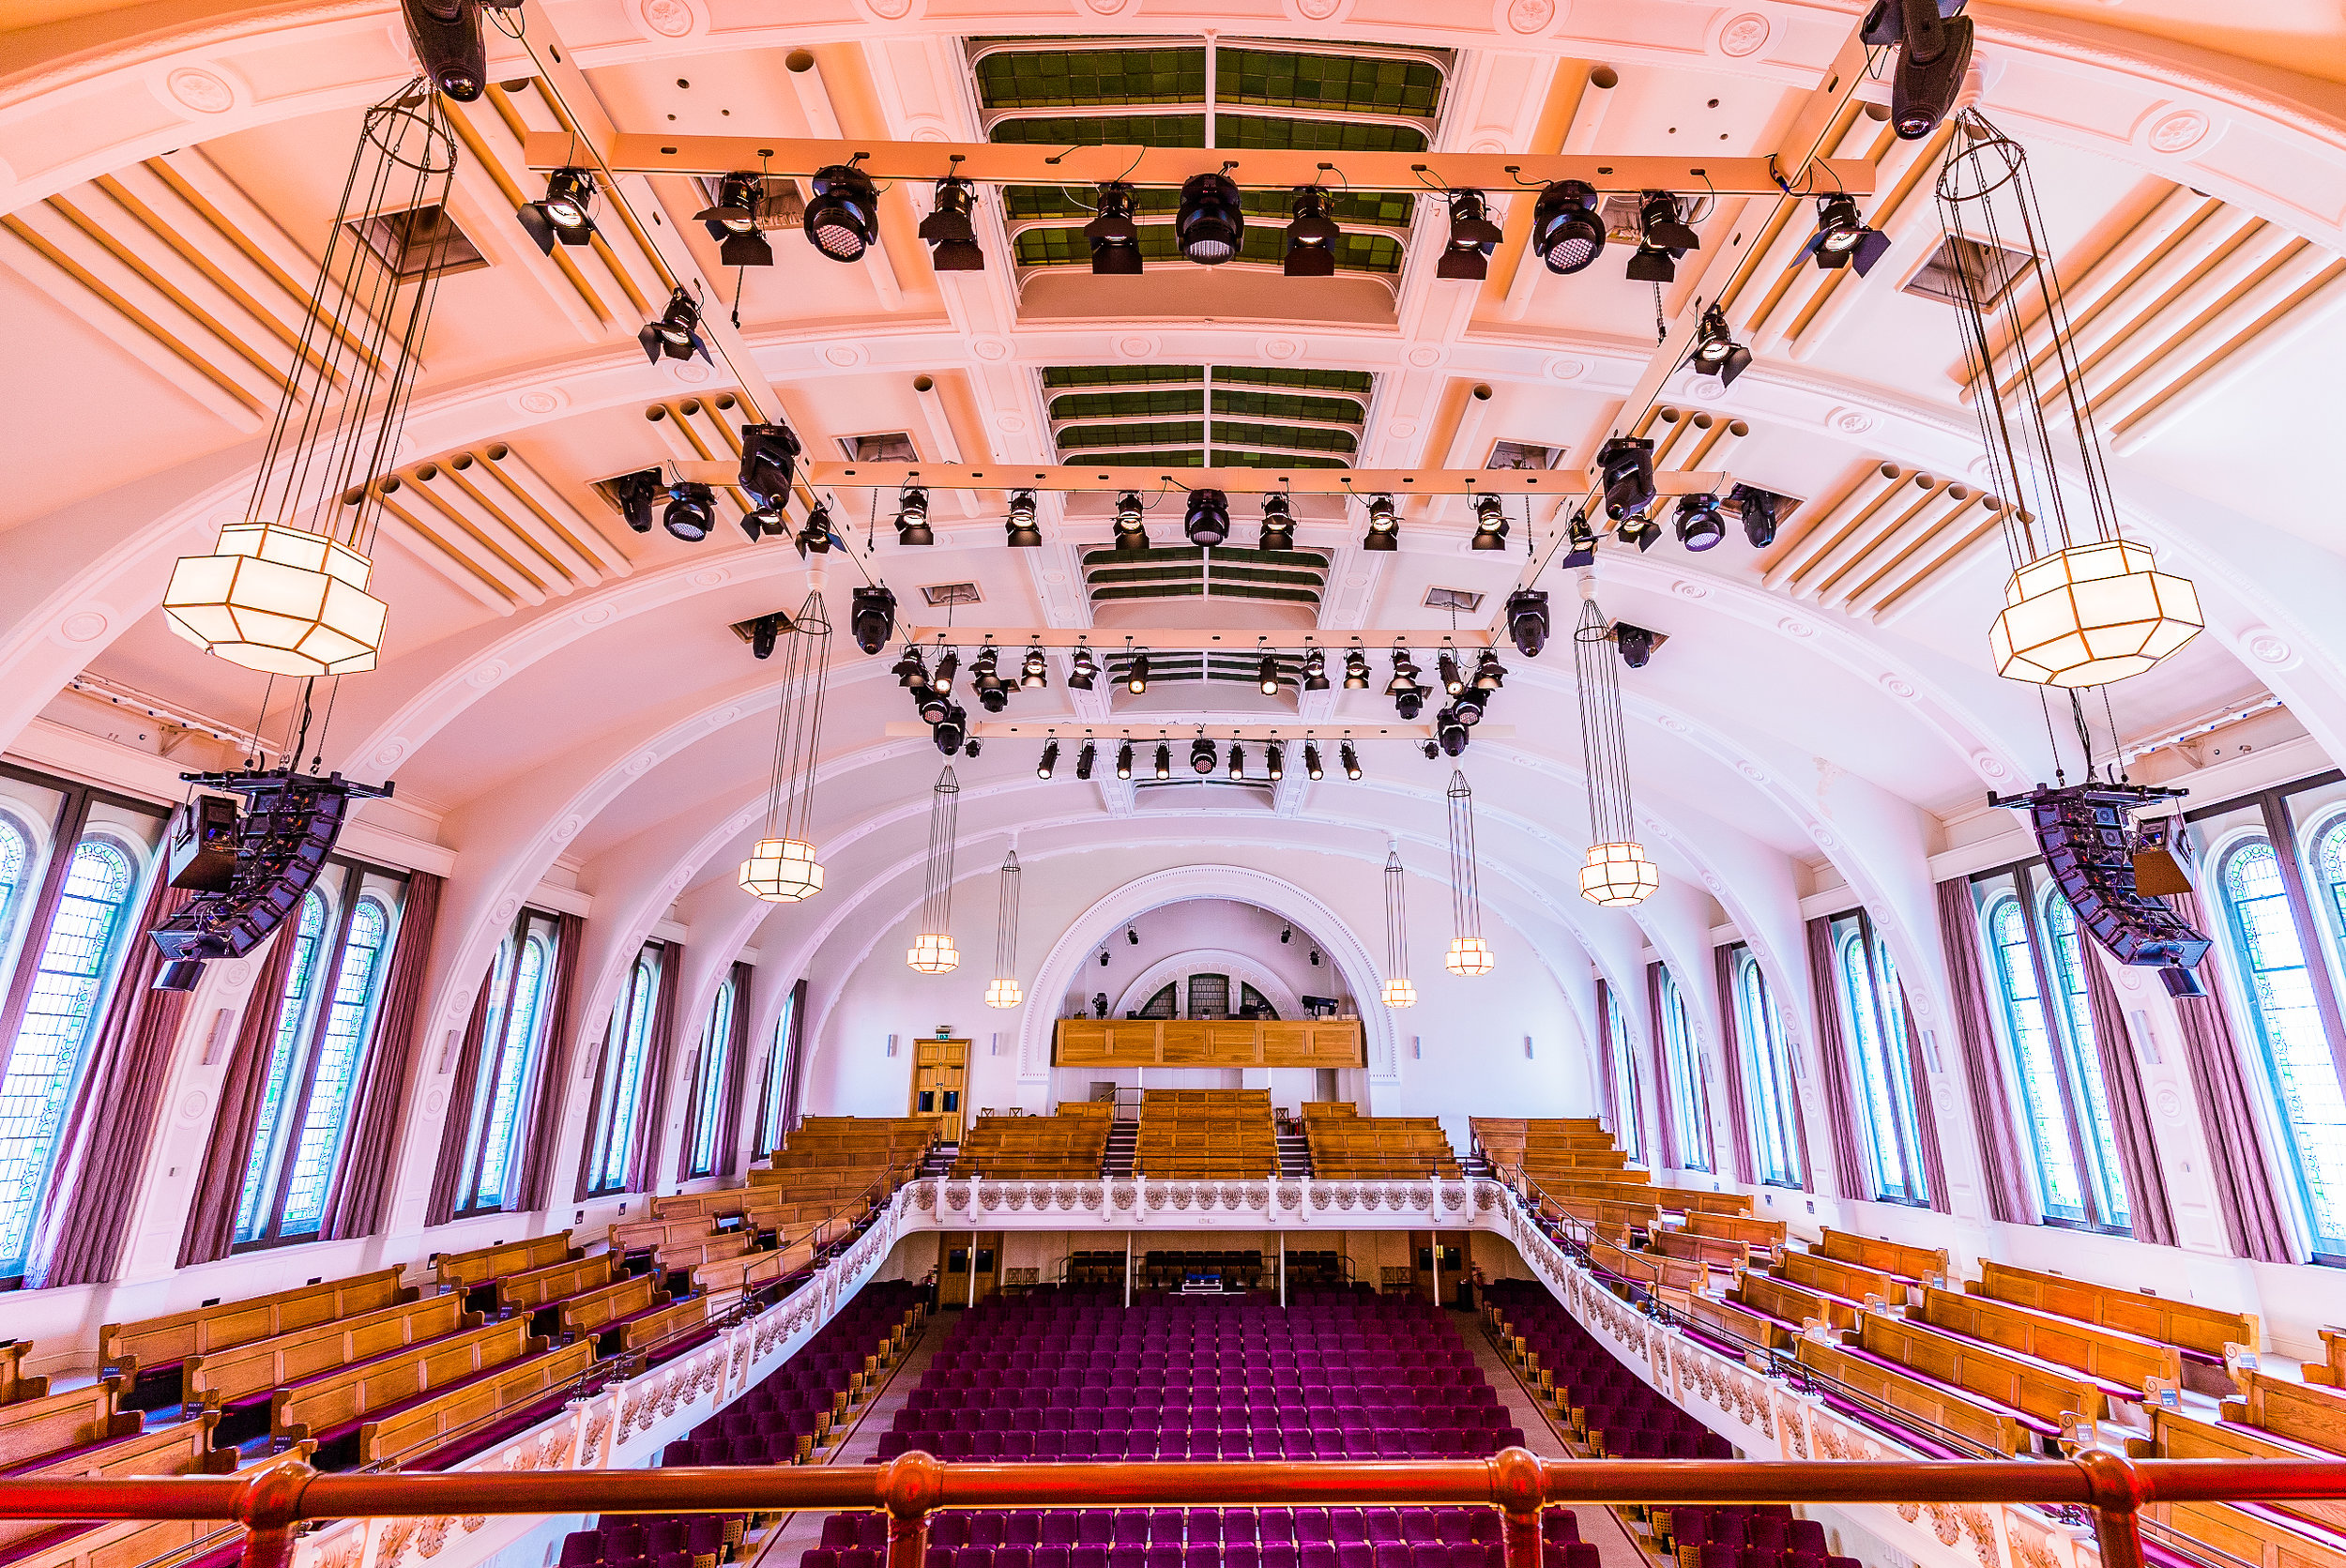 cadogan-hall-auditorium_24688927708_o.jpg